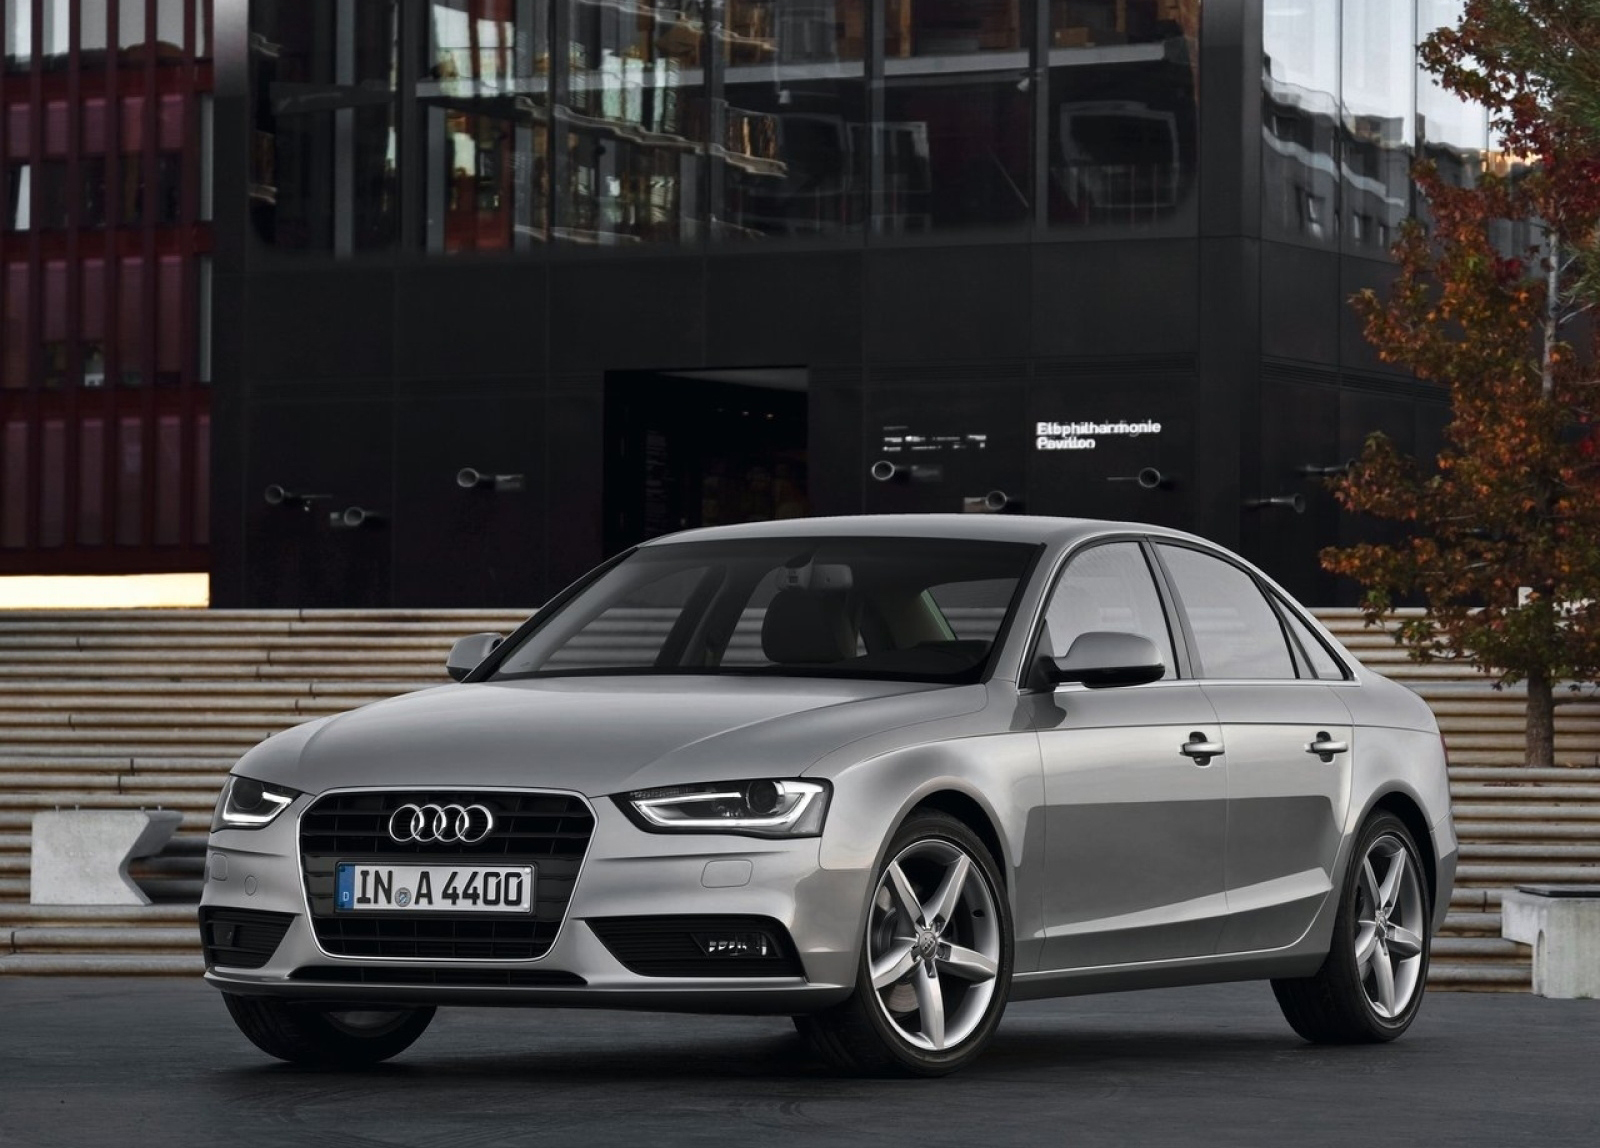 2013 audi a4 wallpapers the world of audi. Black Bedroom Furniture Sets. Home Design Ideas